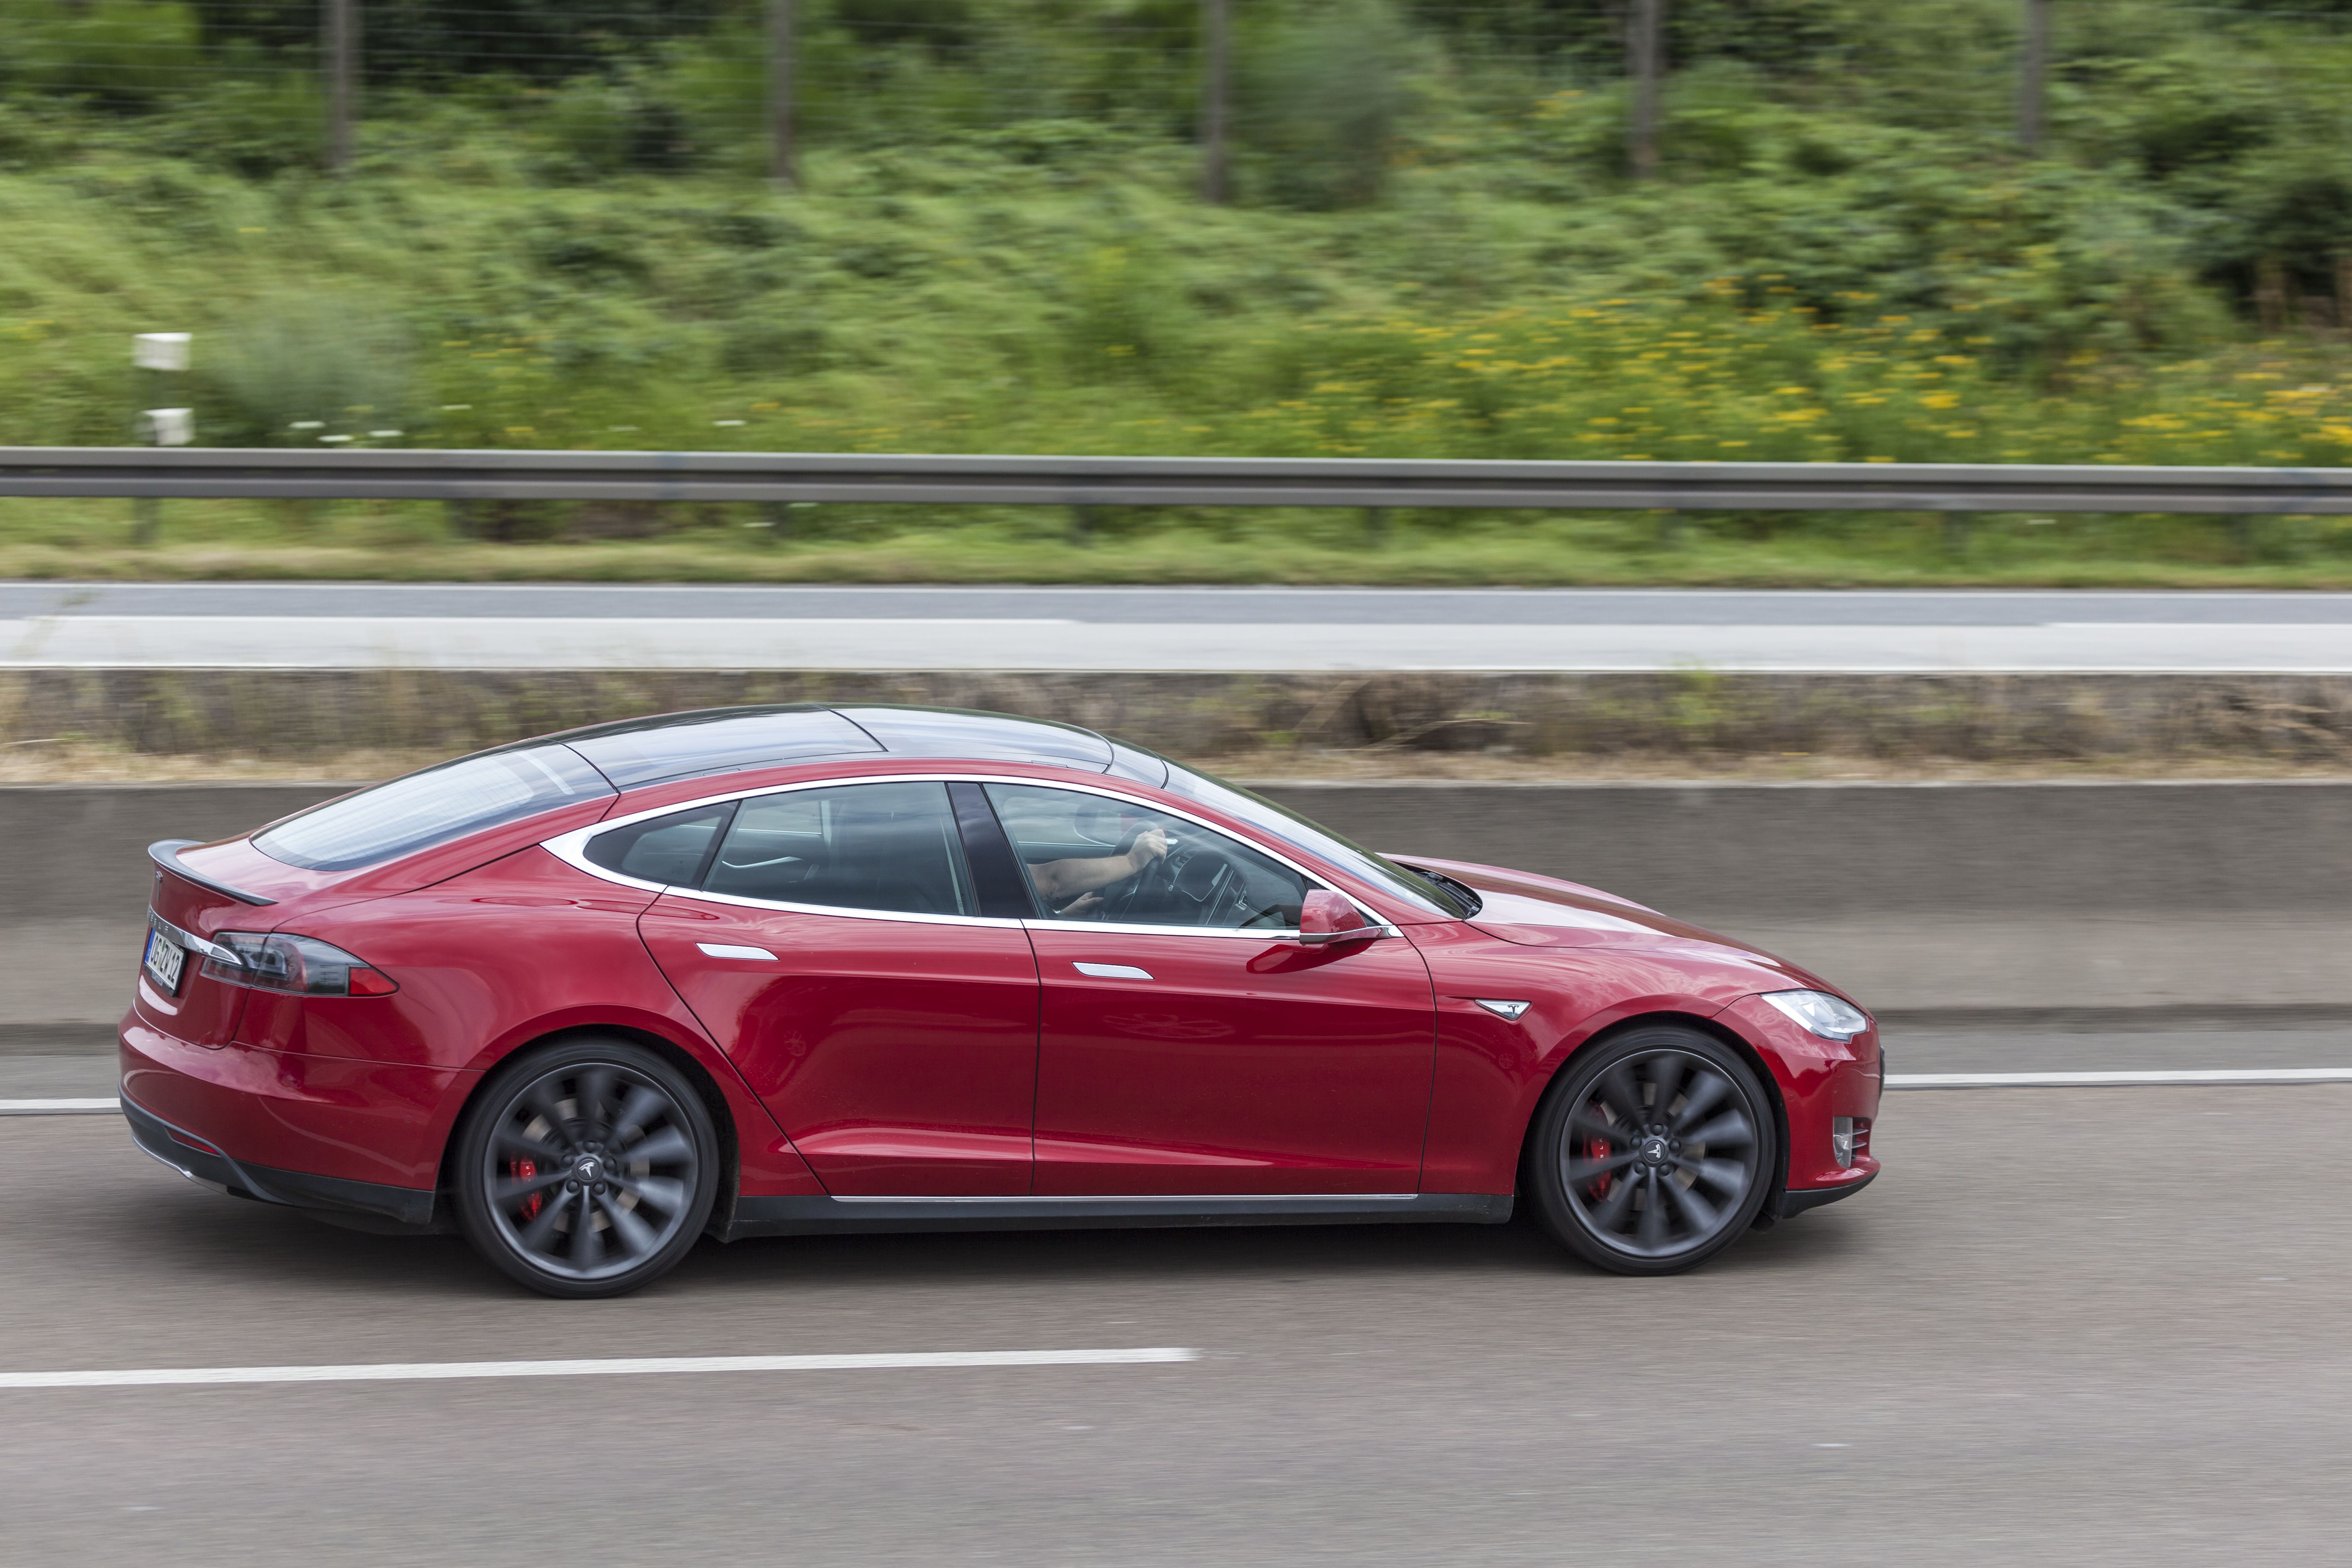 Tesla (TSLA) extended losses Tuesday as the market reassesses its valuation amid rising real interest rates and falling Bitcoin prices.